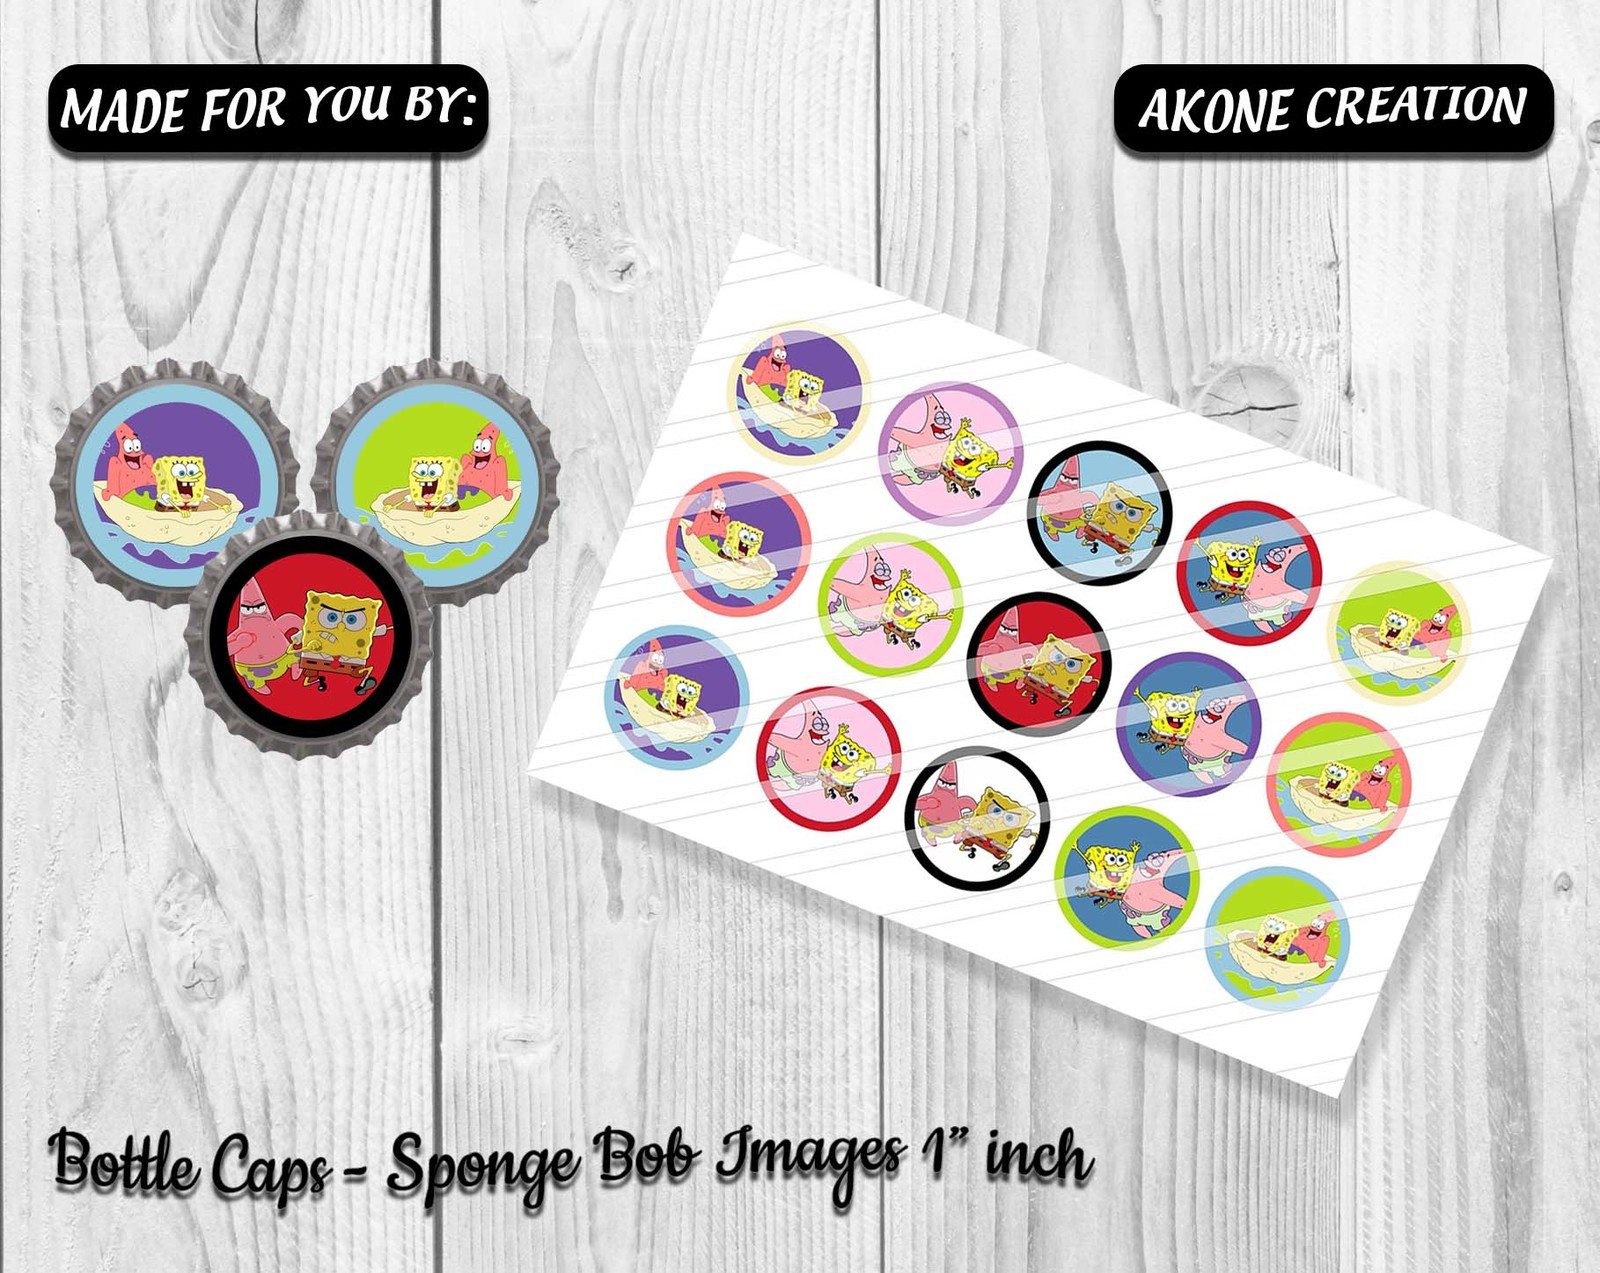 picture relating to Printable Bottlecap Images identified as 1 Sheet Sponge Bob Printable Bottlecap - and 50 equivalent products